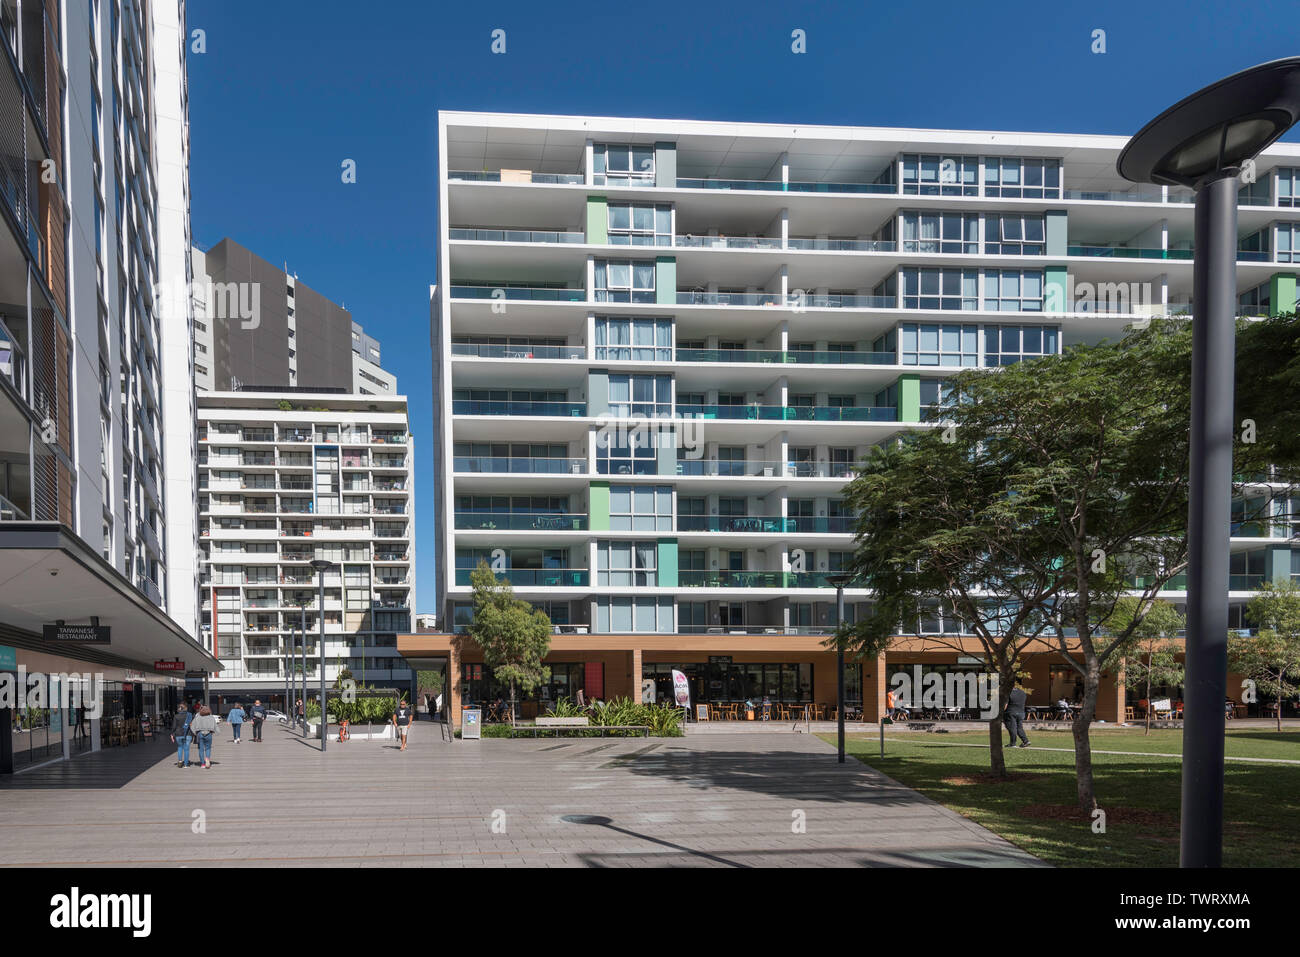 A central town square green space, part of the Discovery Point development of high rise accommodation and apartments at Wolli Creek, Sydney, Australia - Stock Image